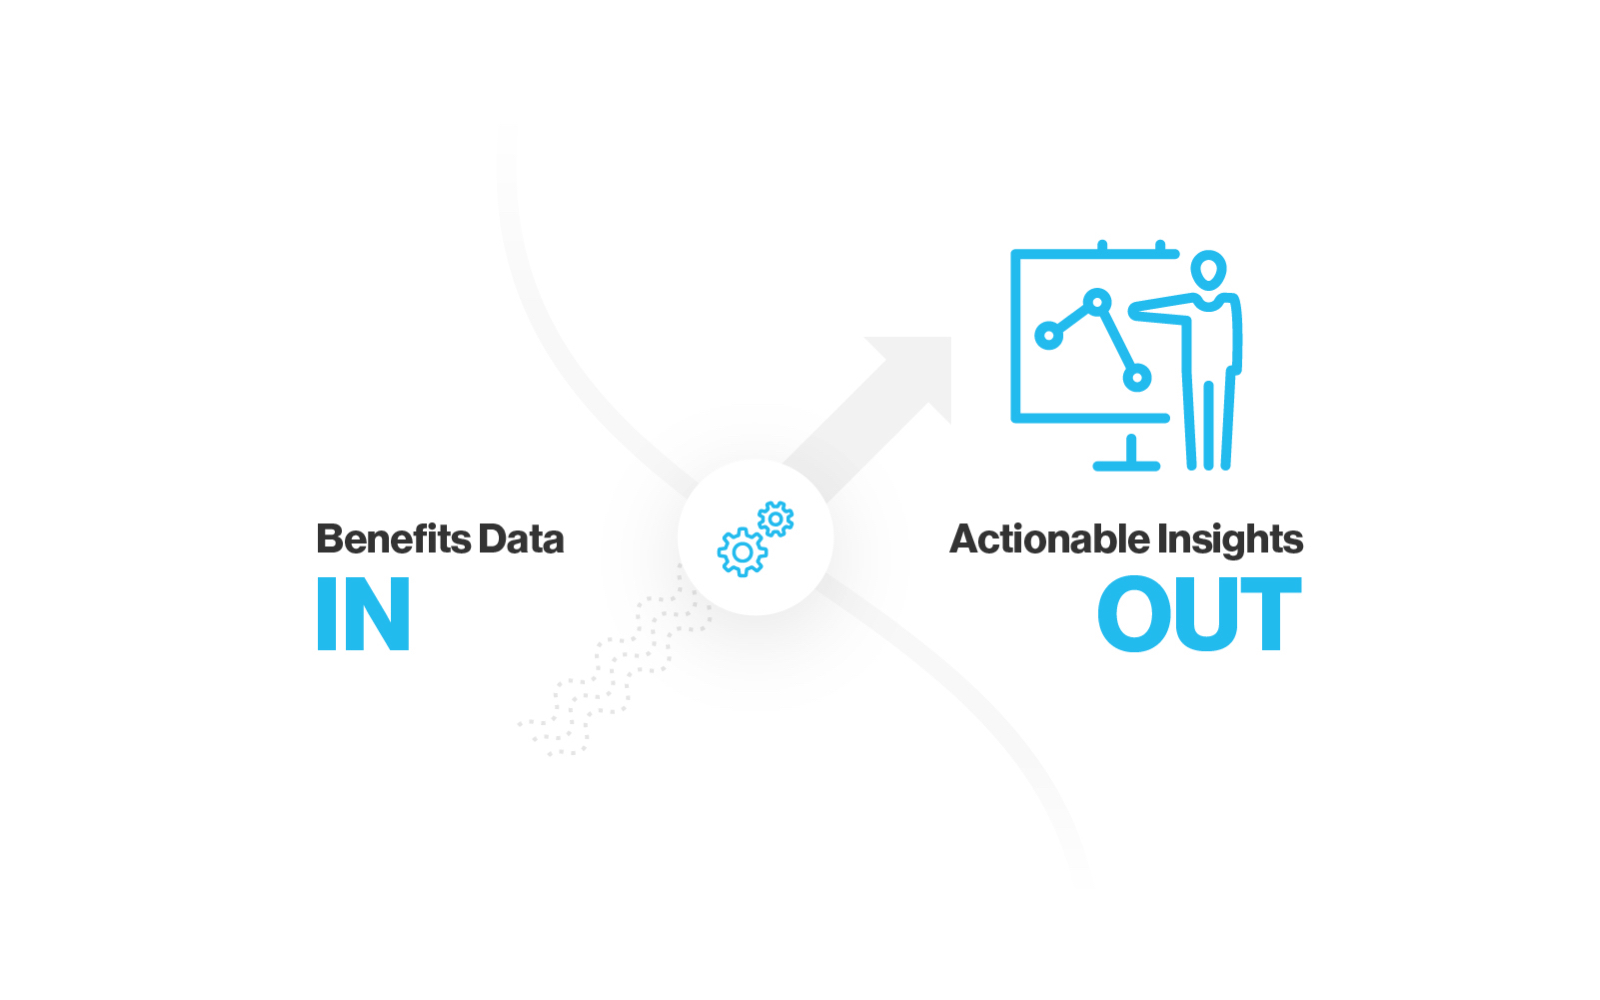 Illustration showing benefits data in and actionable insights out.